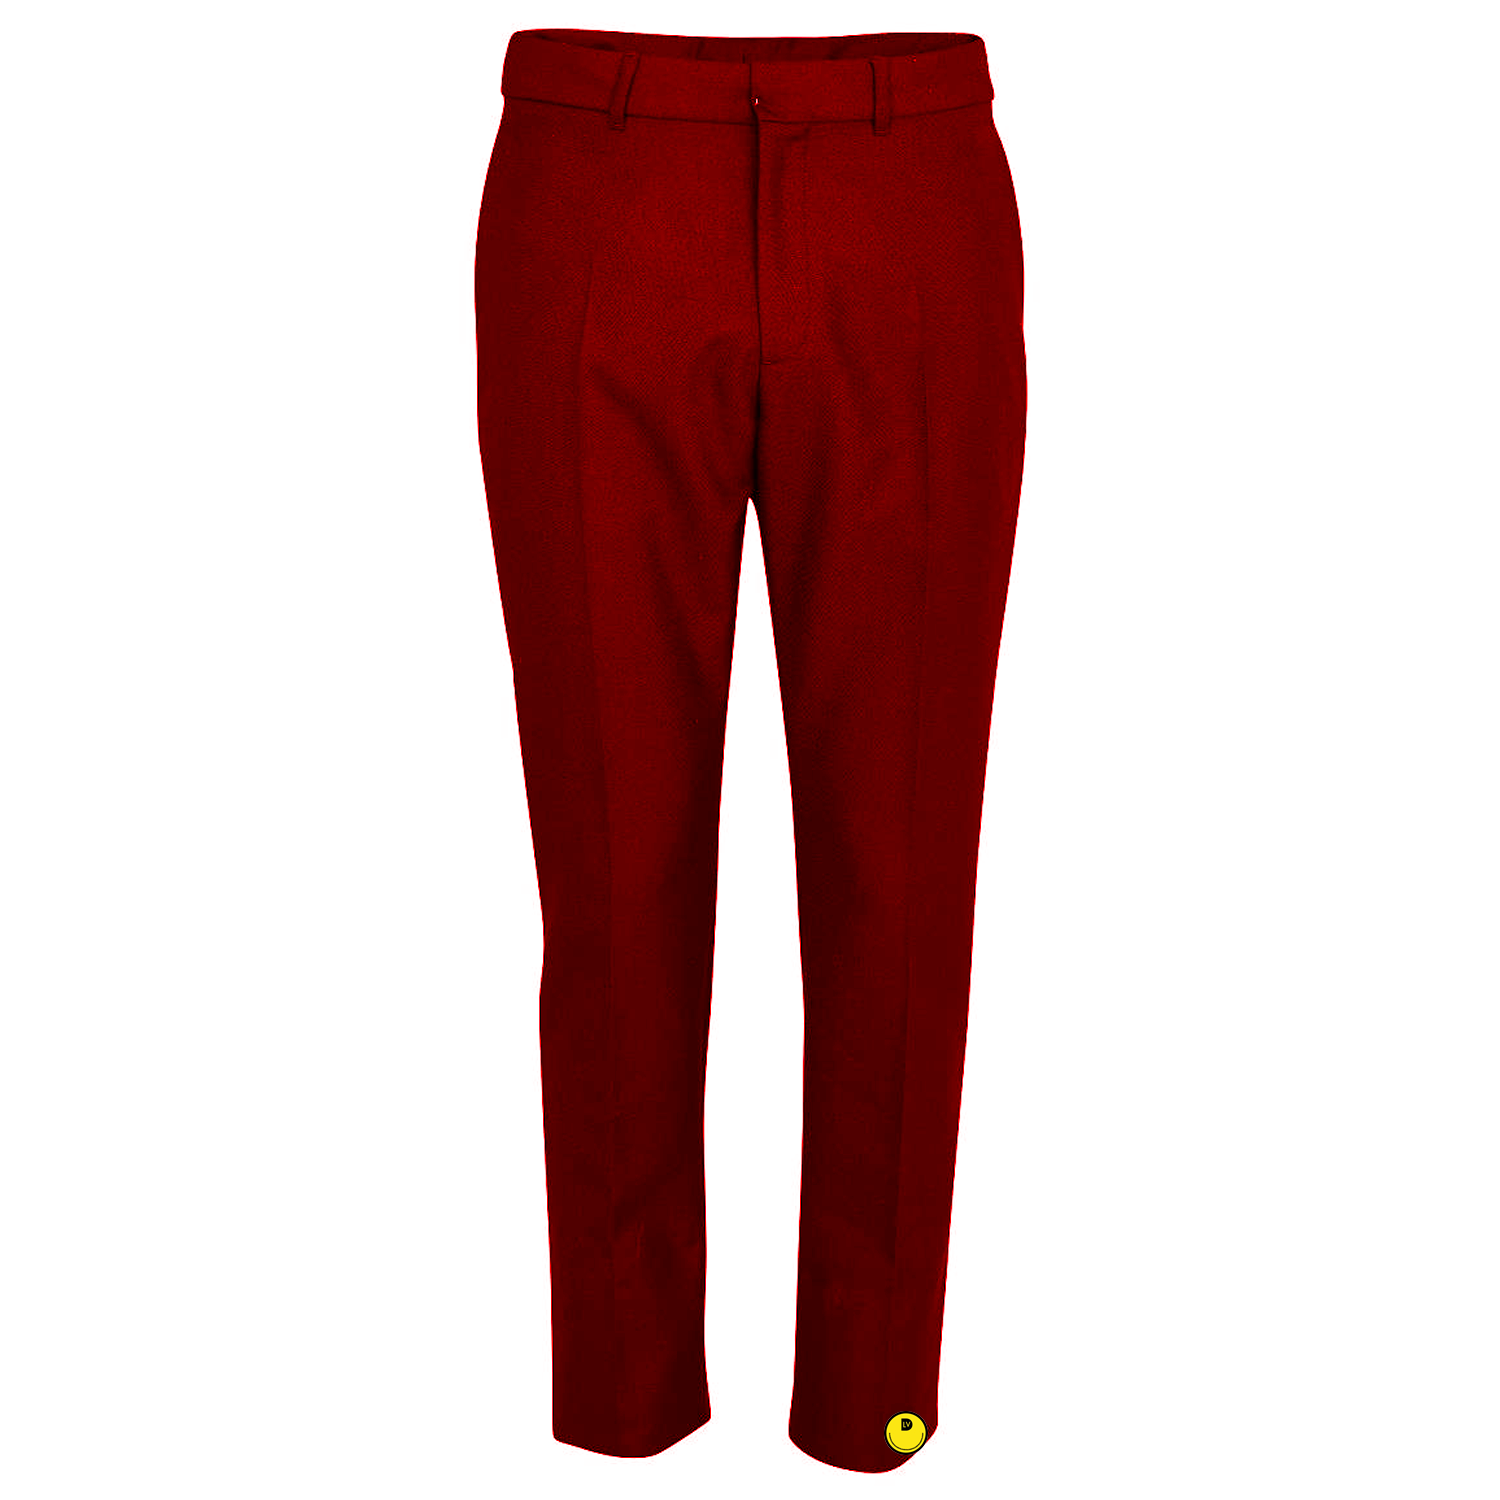 SIGARET TROUSERS - €790 $-rouge